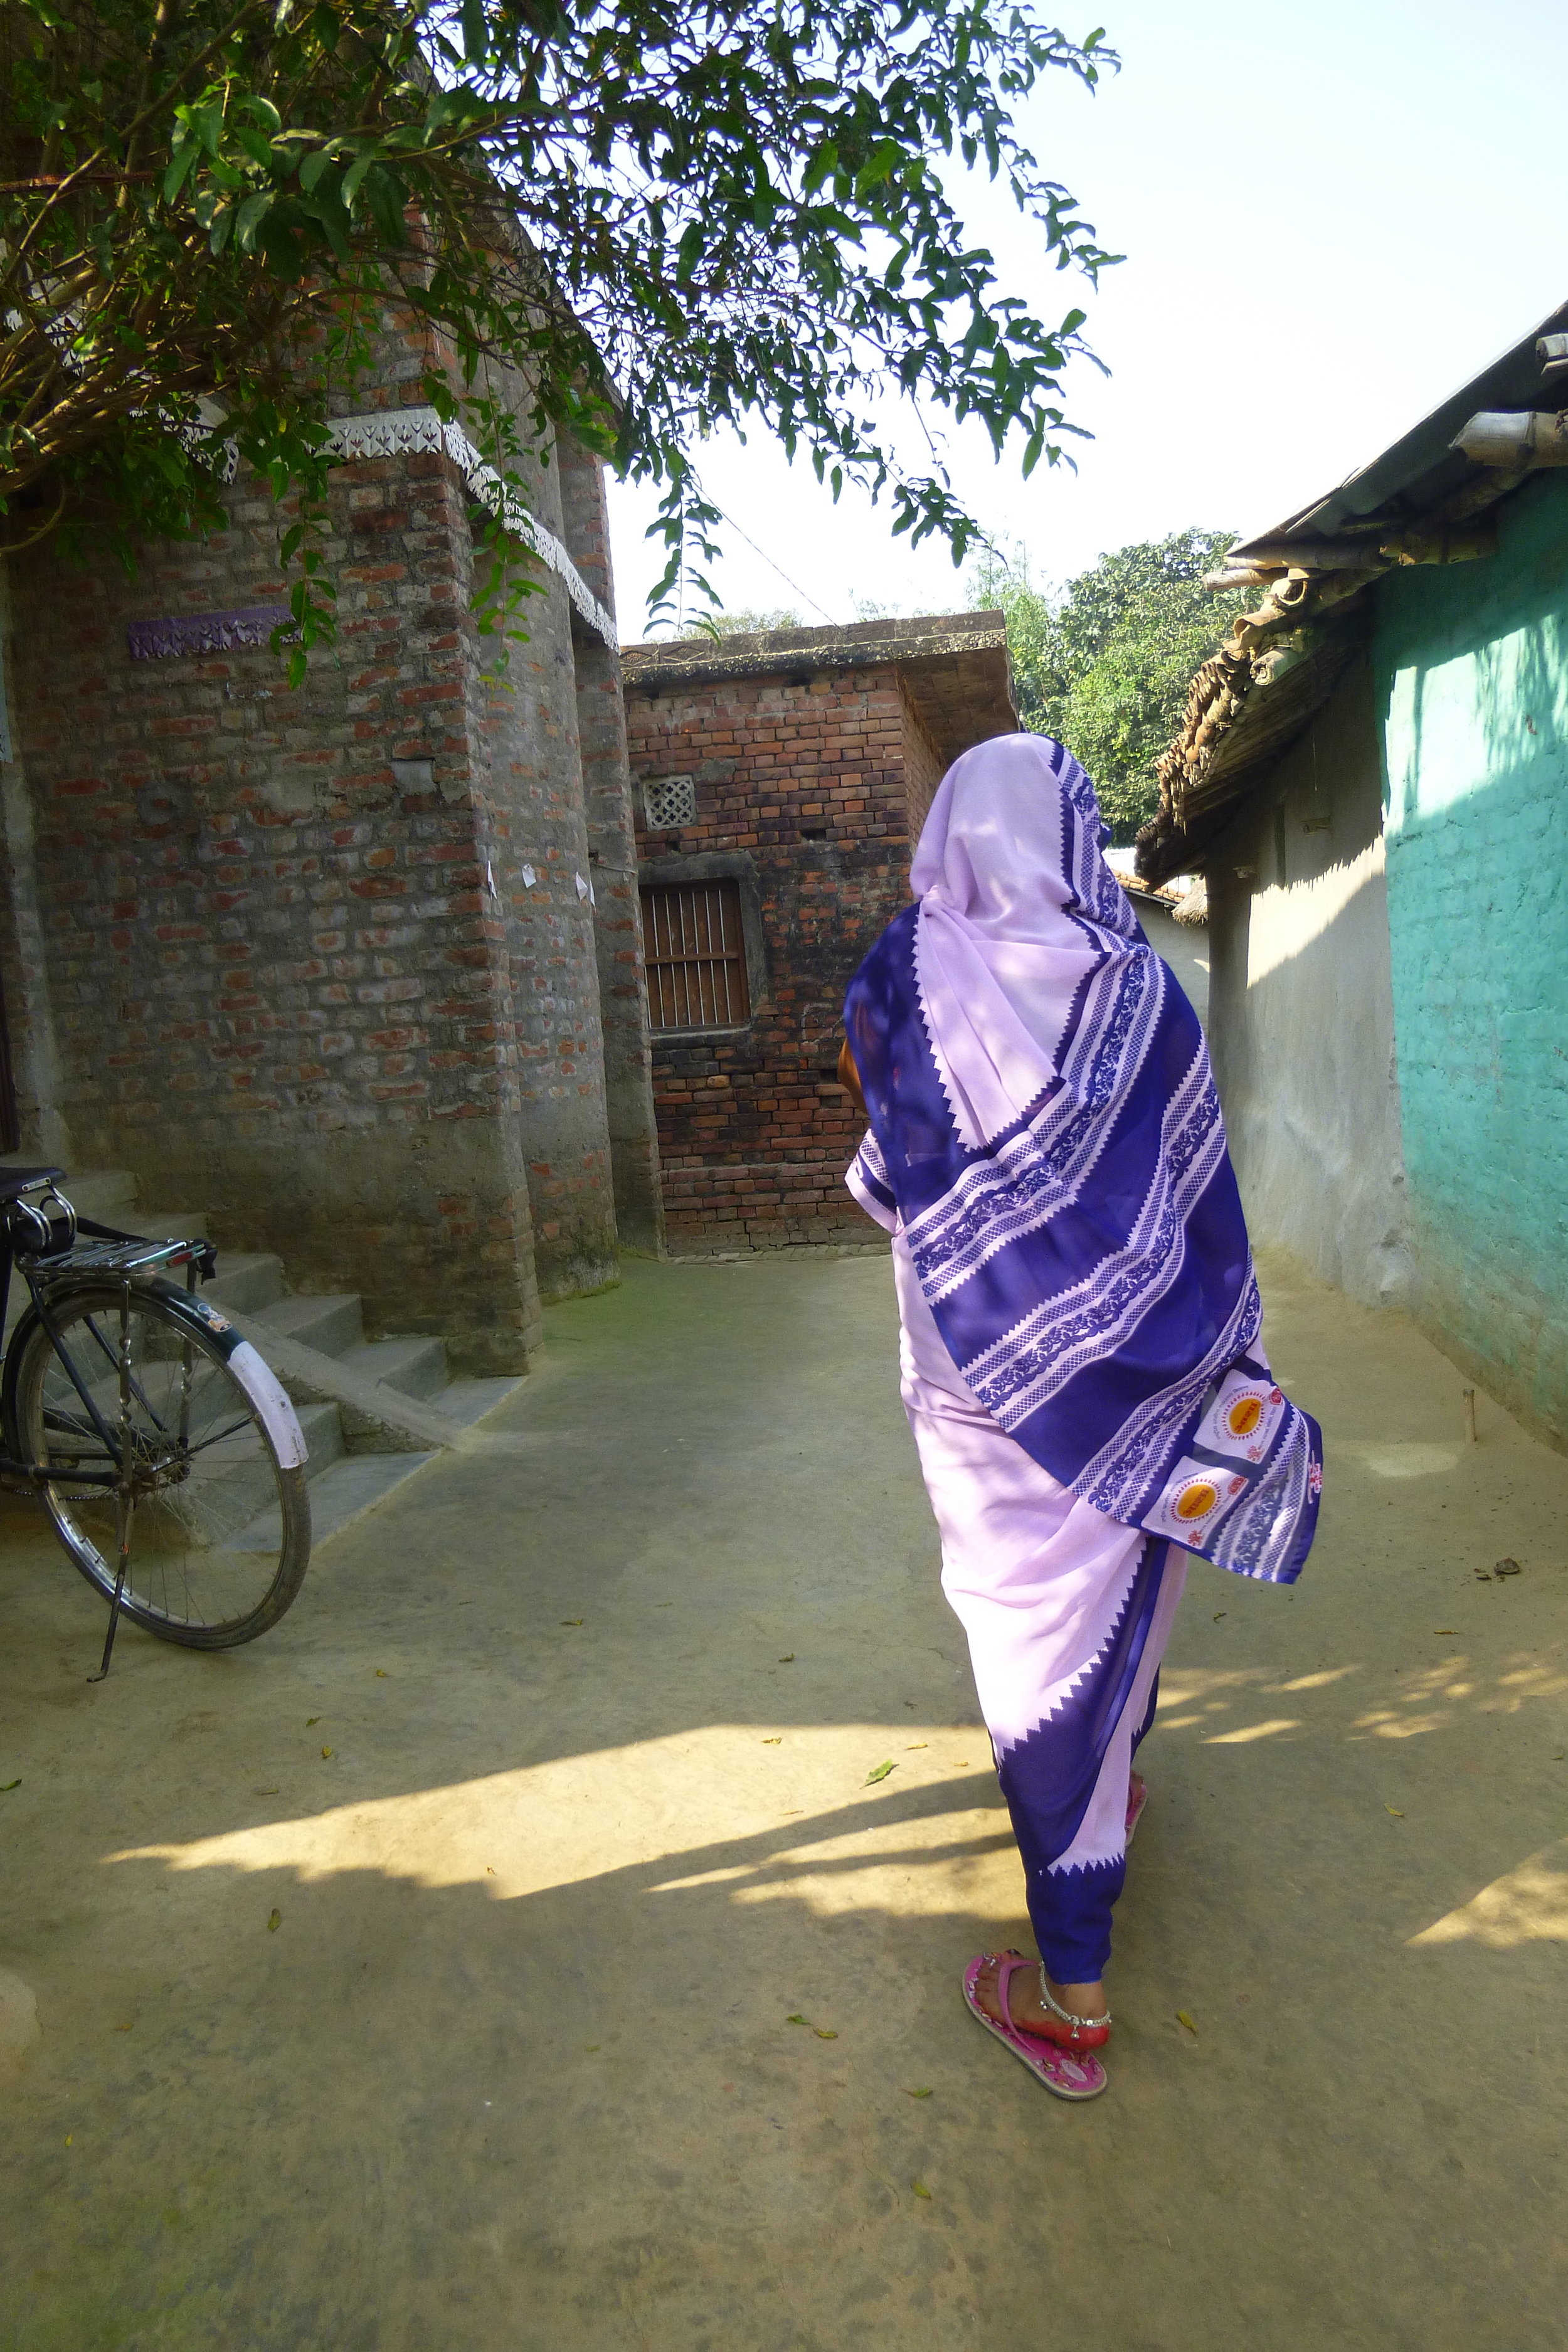 When Rita took the position of village nurse (Asha), she was too nervous to go even a few streets away without her husband. - Photo by Sarah K.